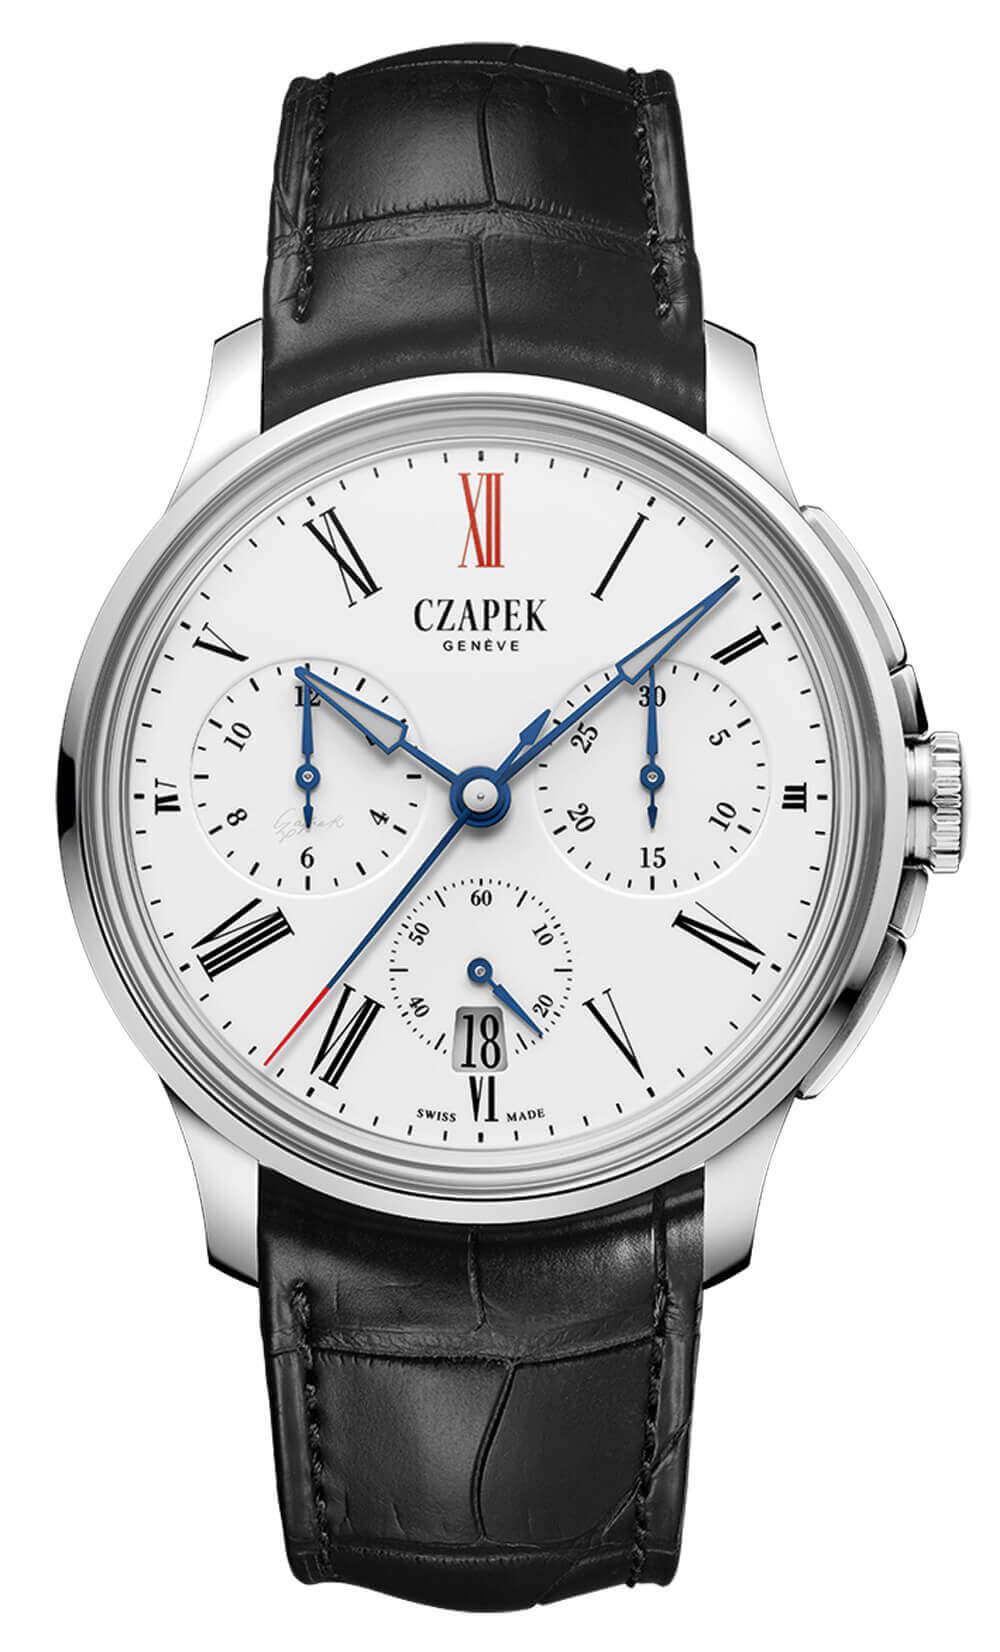 Czapek Faubourg de Cracovie Chronograph